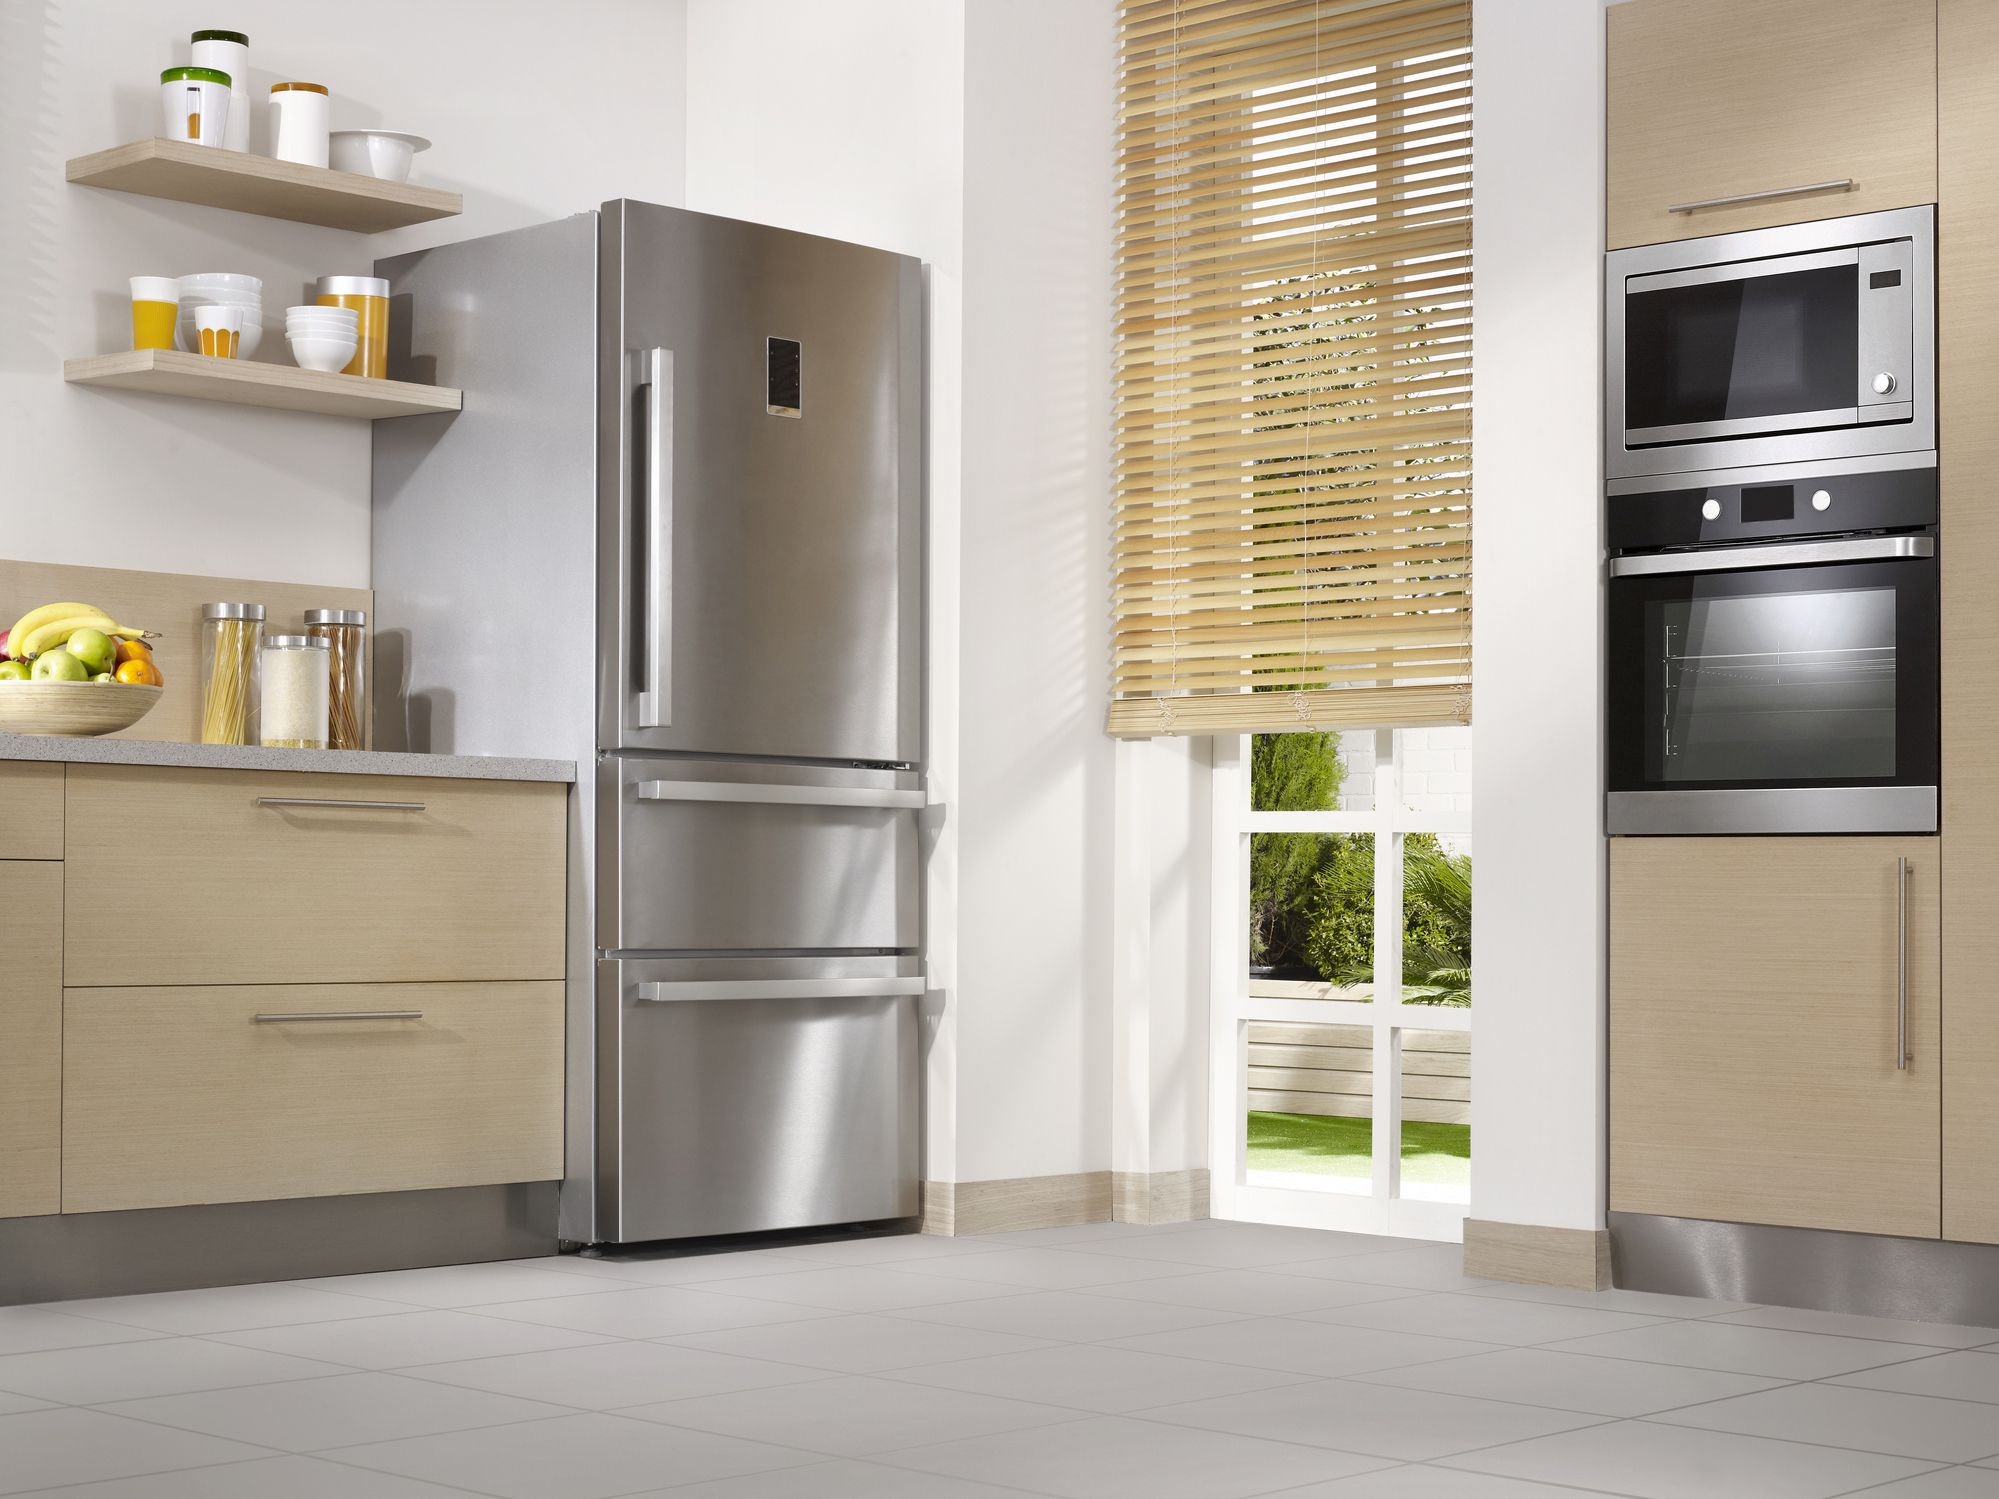 Fridge Freezer Buying Guide What To Look Out For